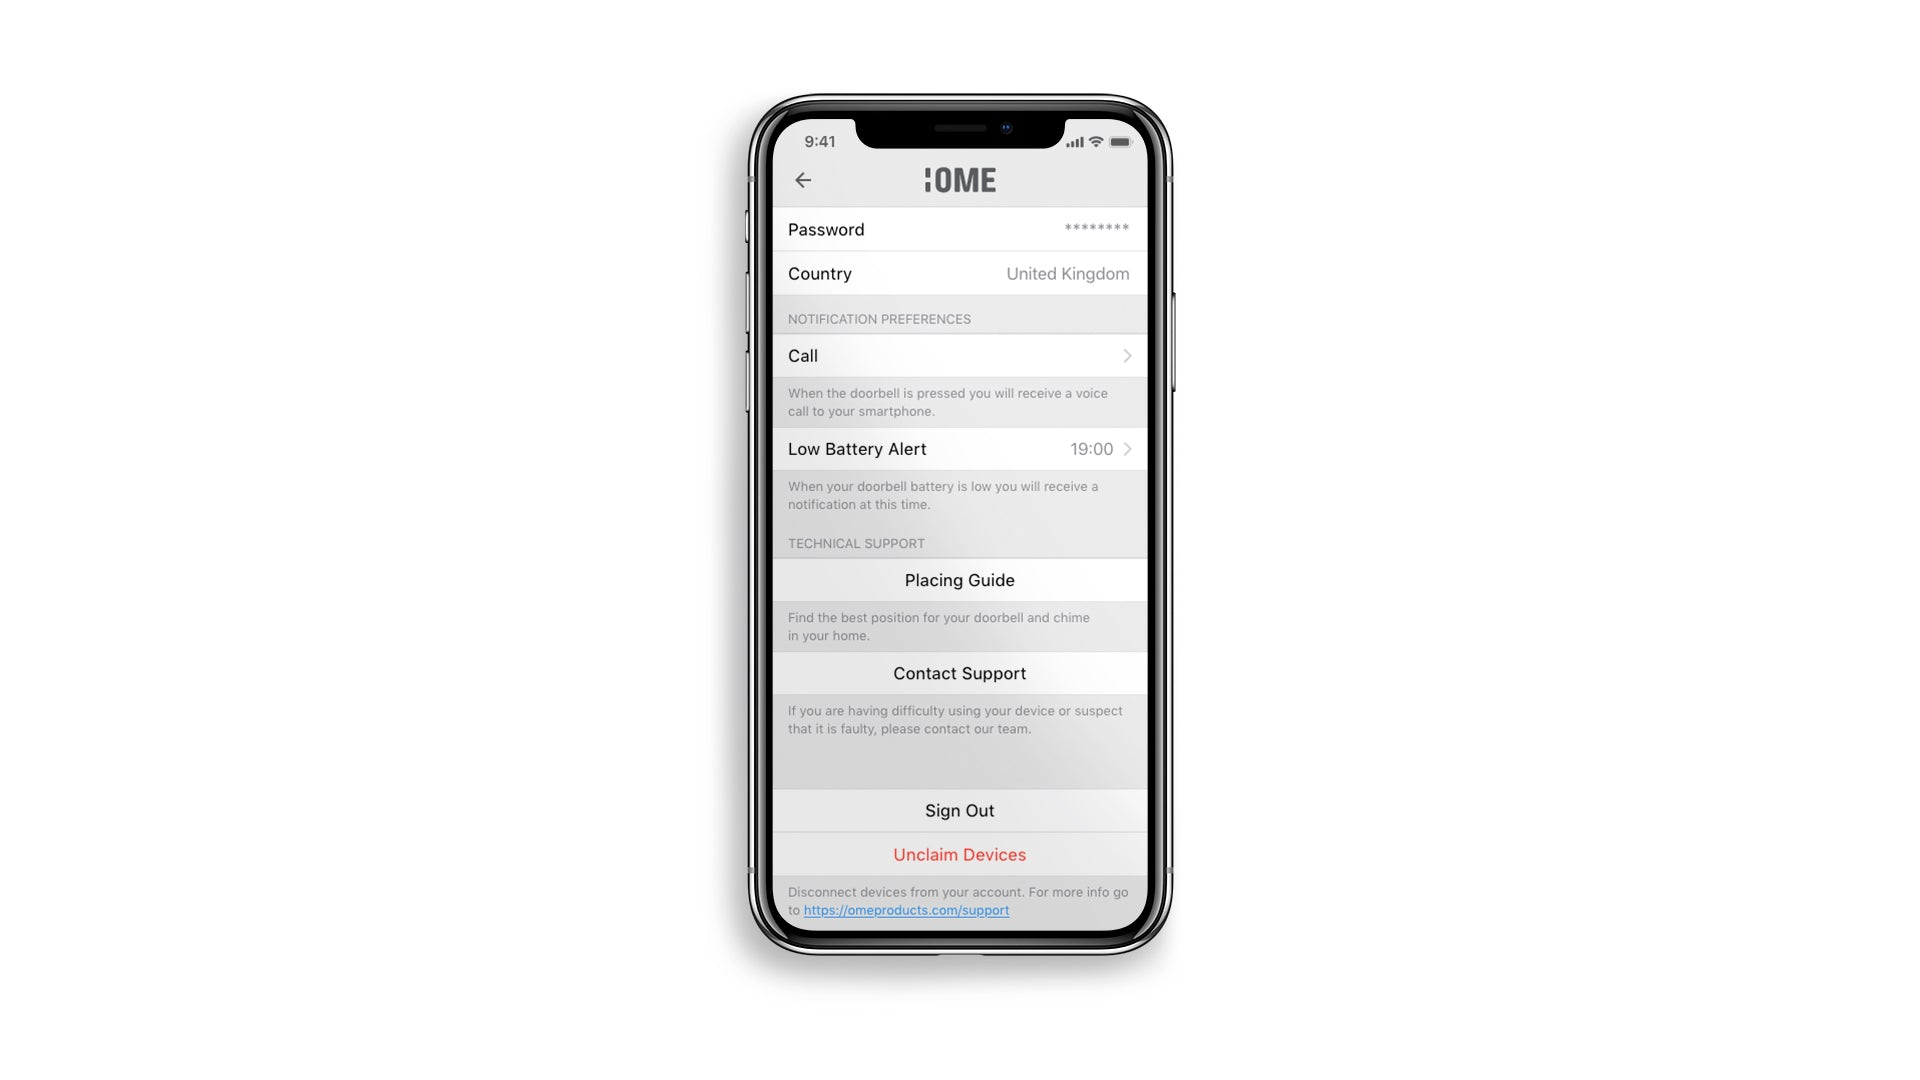 Ome Smart Doorbell App Settings